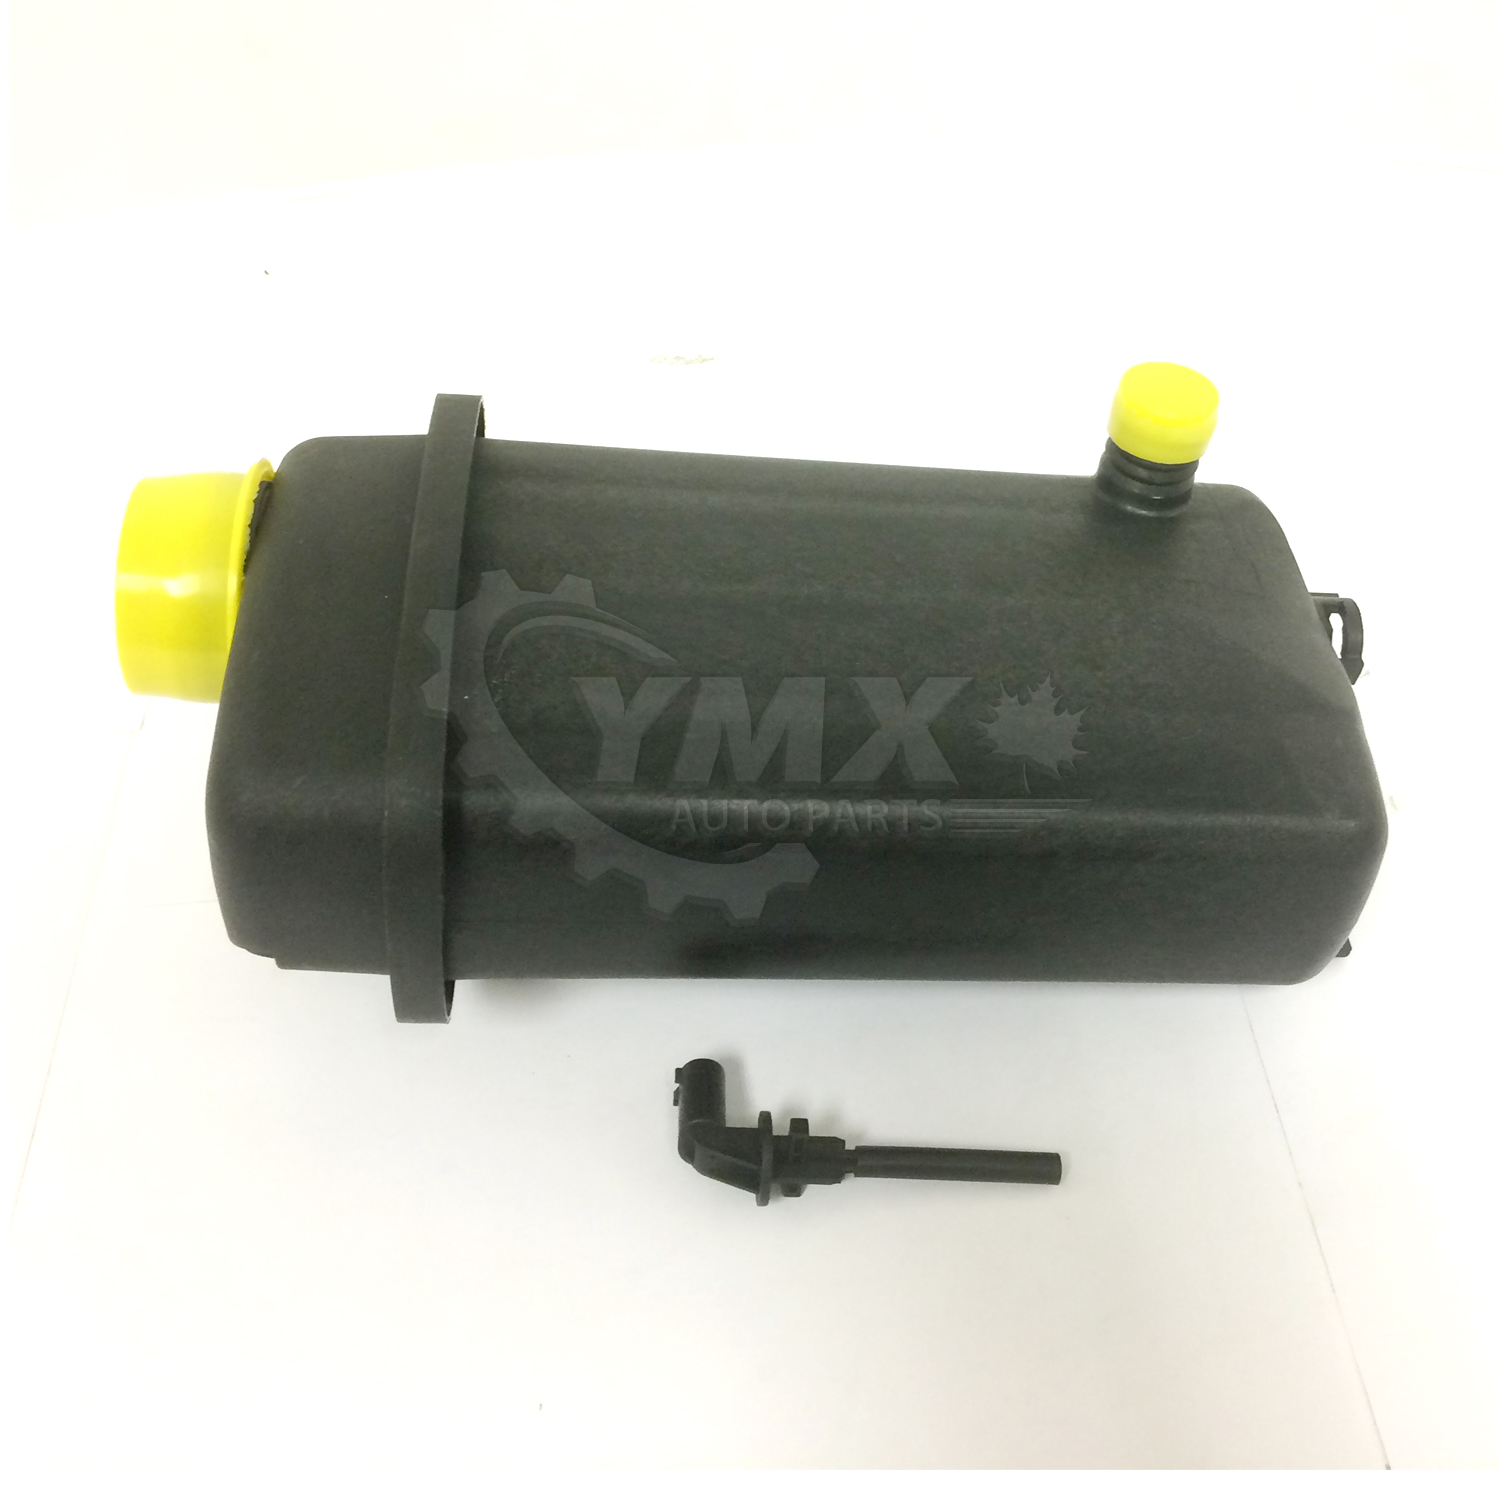 Coolant Expansion Tank fits BMW 540 E39 4.4 96 to 04 17111741167 17111723071 New